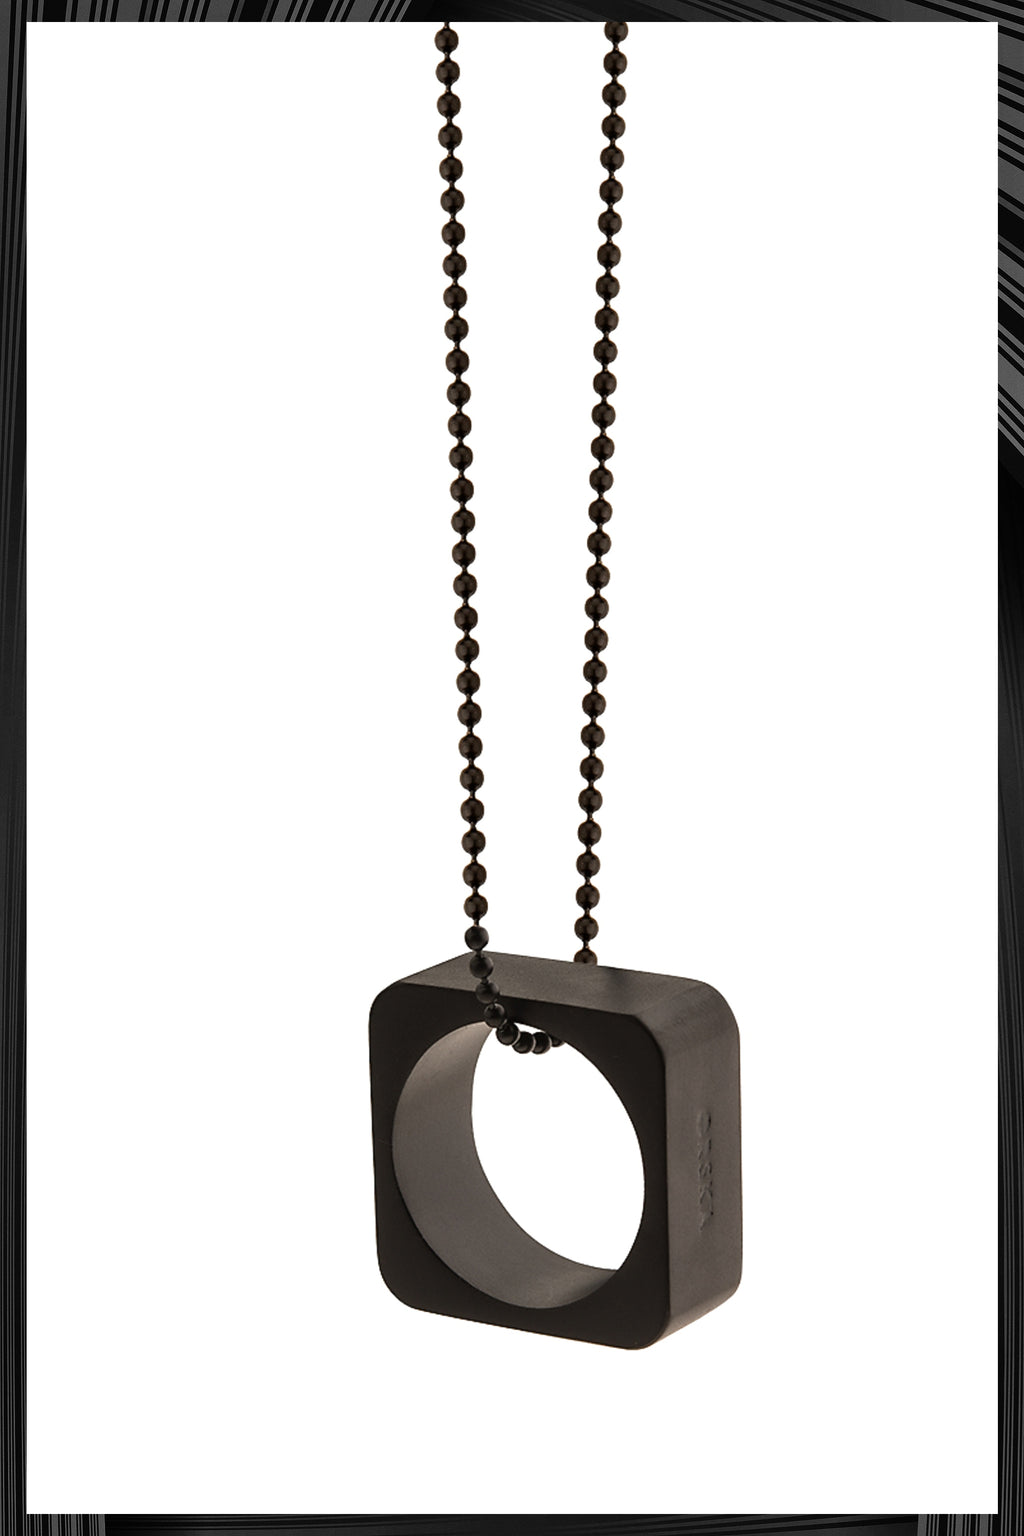 Machine Necklace | Free Delivery - Quick Shipping